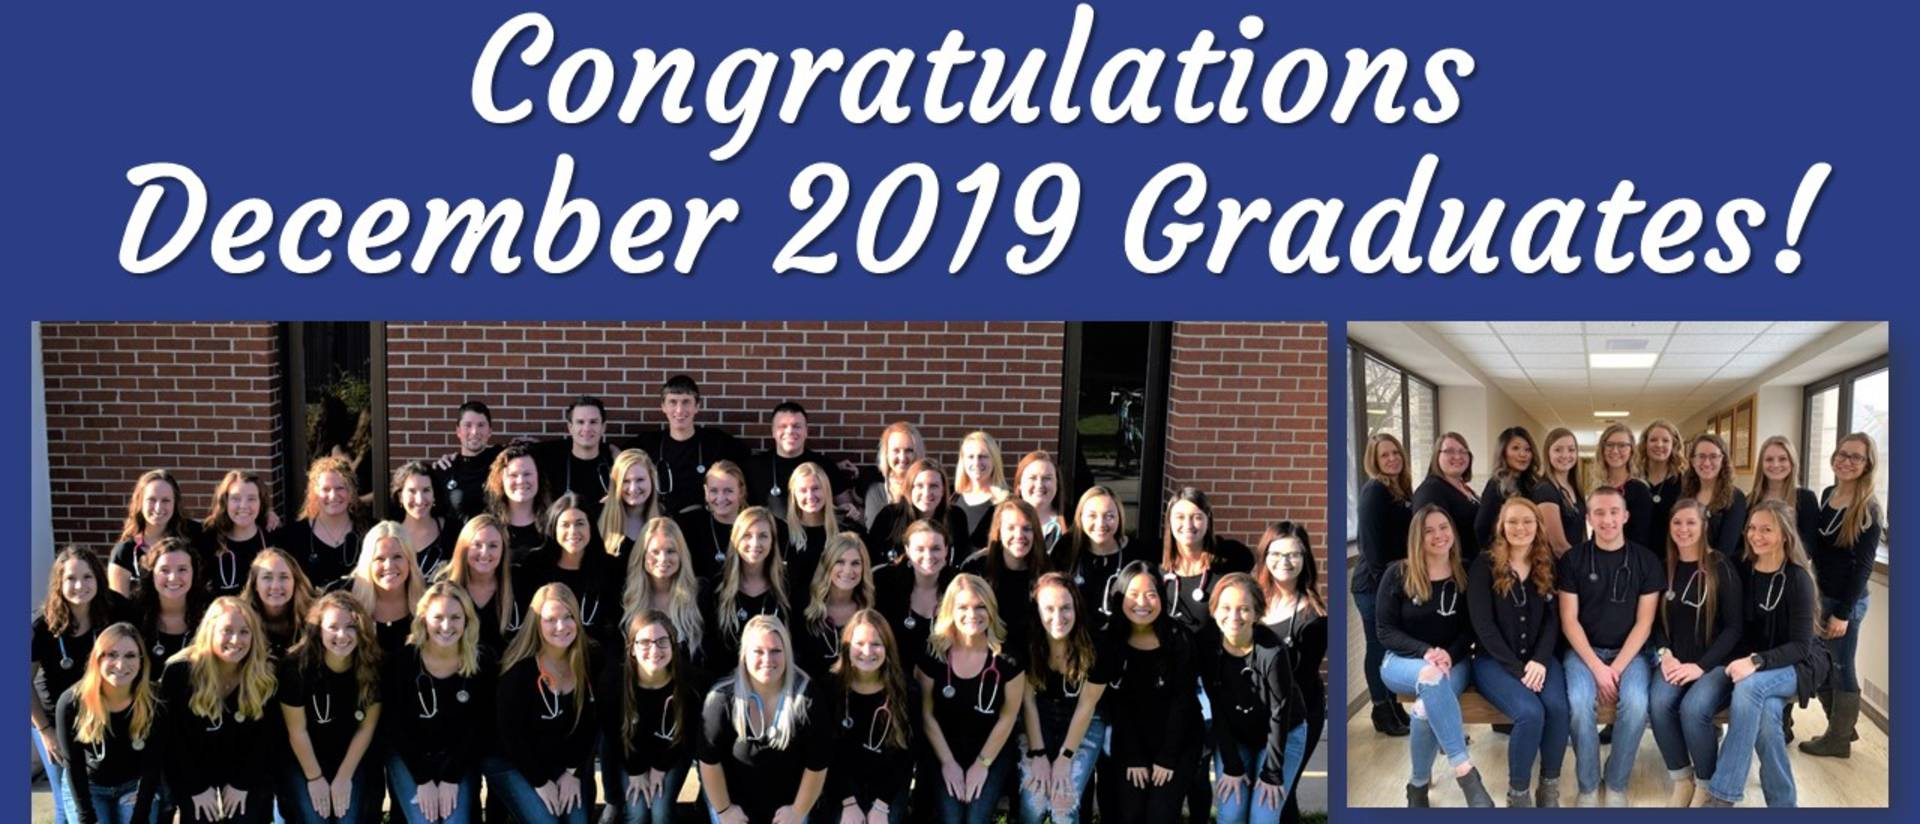 Fall 2019 graduates from the nursing program